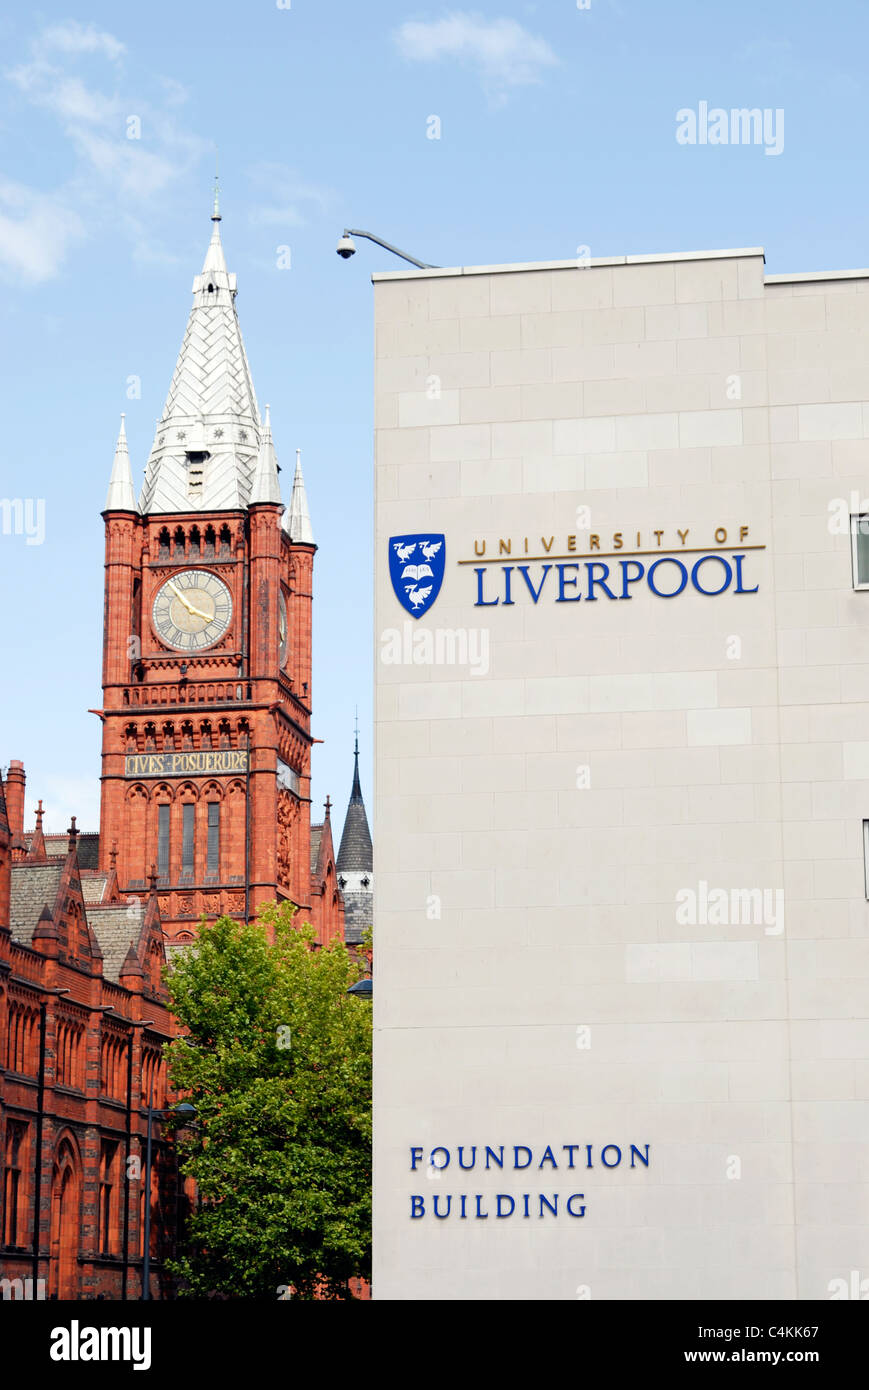 University of Liverpool, Brownlow Hill. - Stock Image